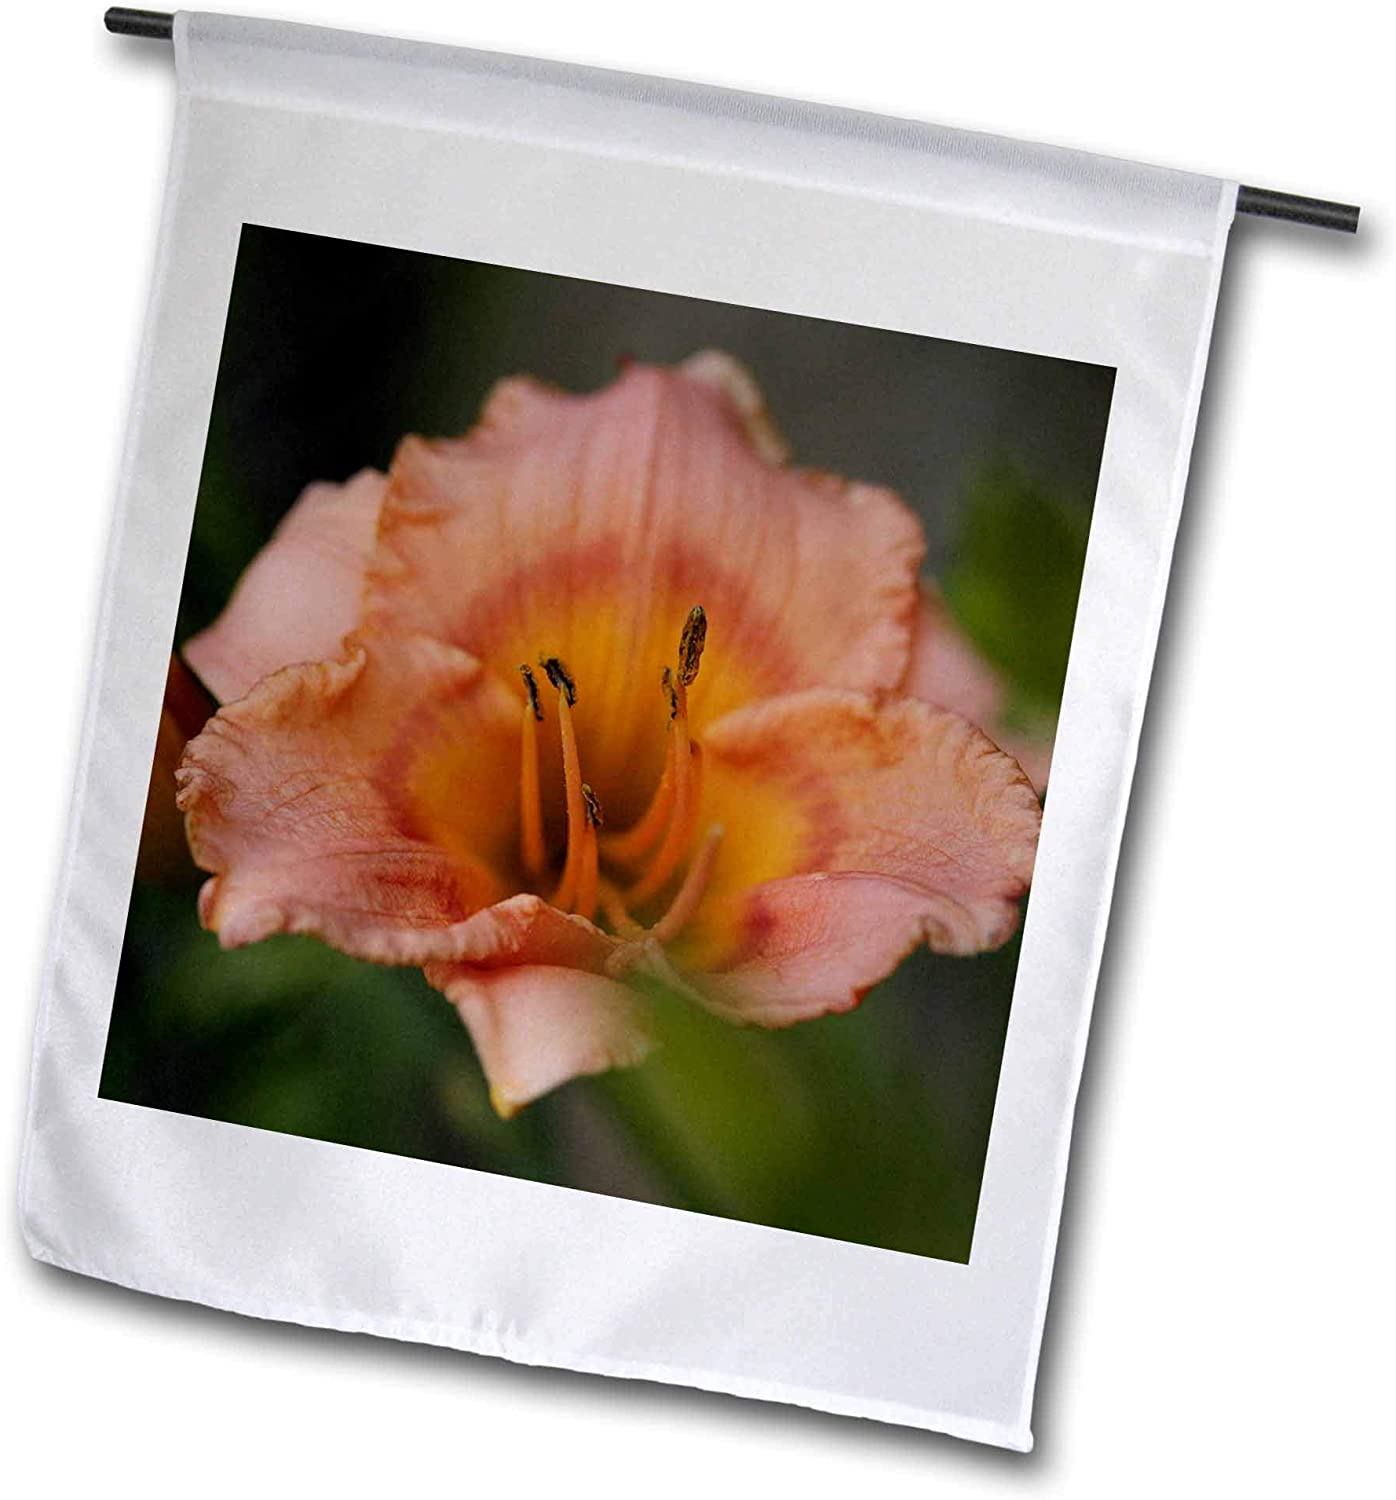 3dRose Stamp City - Flowers - Macro Photograph of a Single Orange Daylily in Full Bloom. - 12 x 18 inch Garden Flag (fl_319079_1)